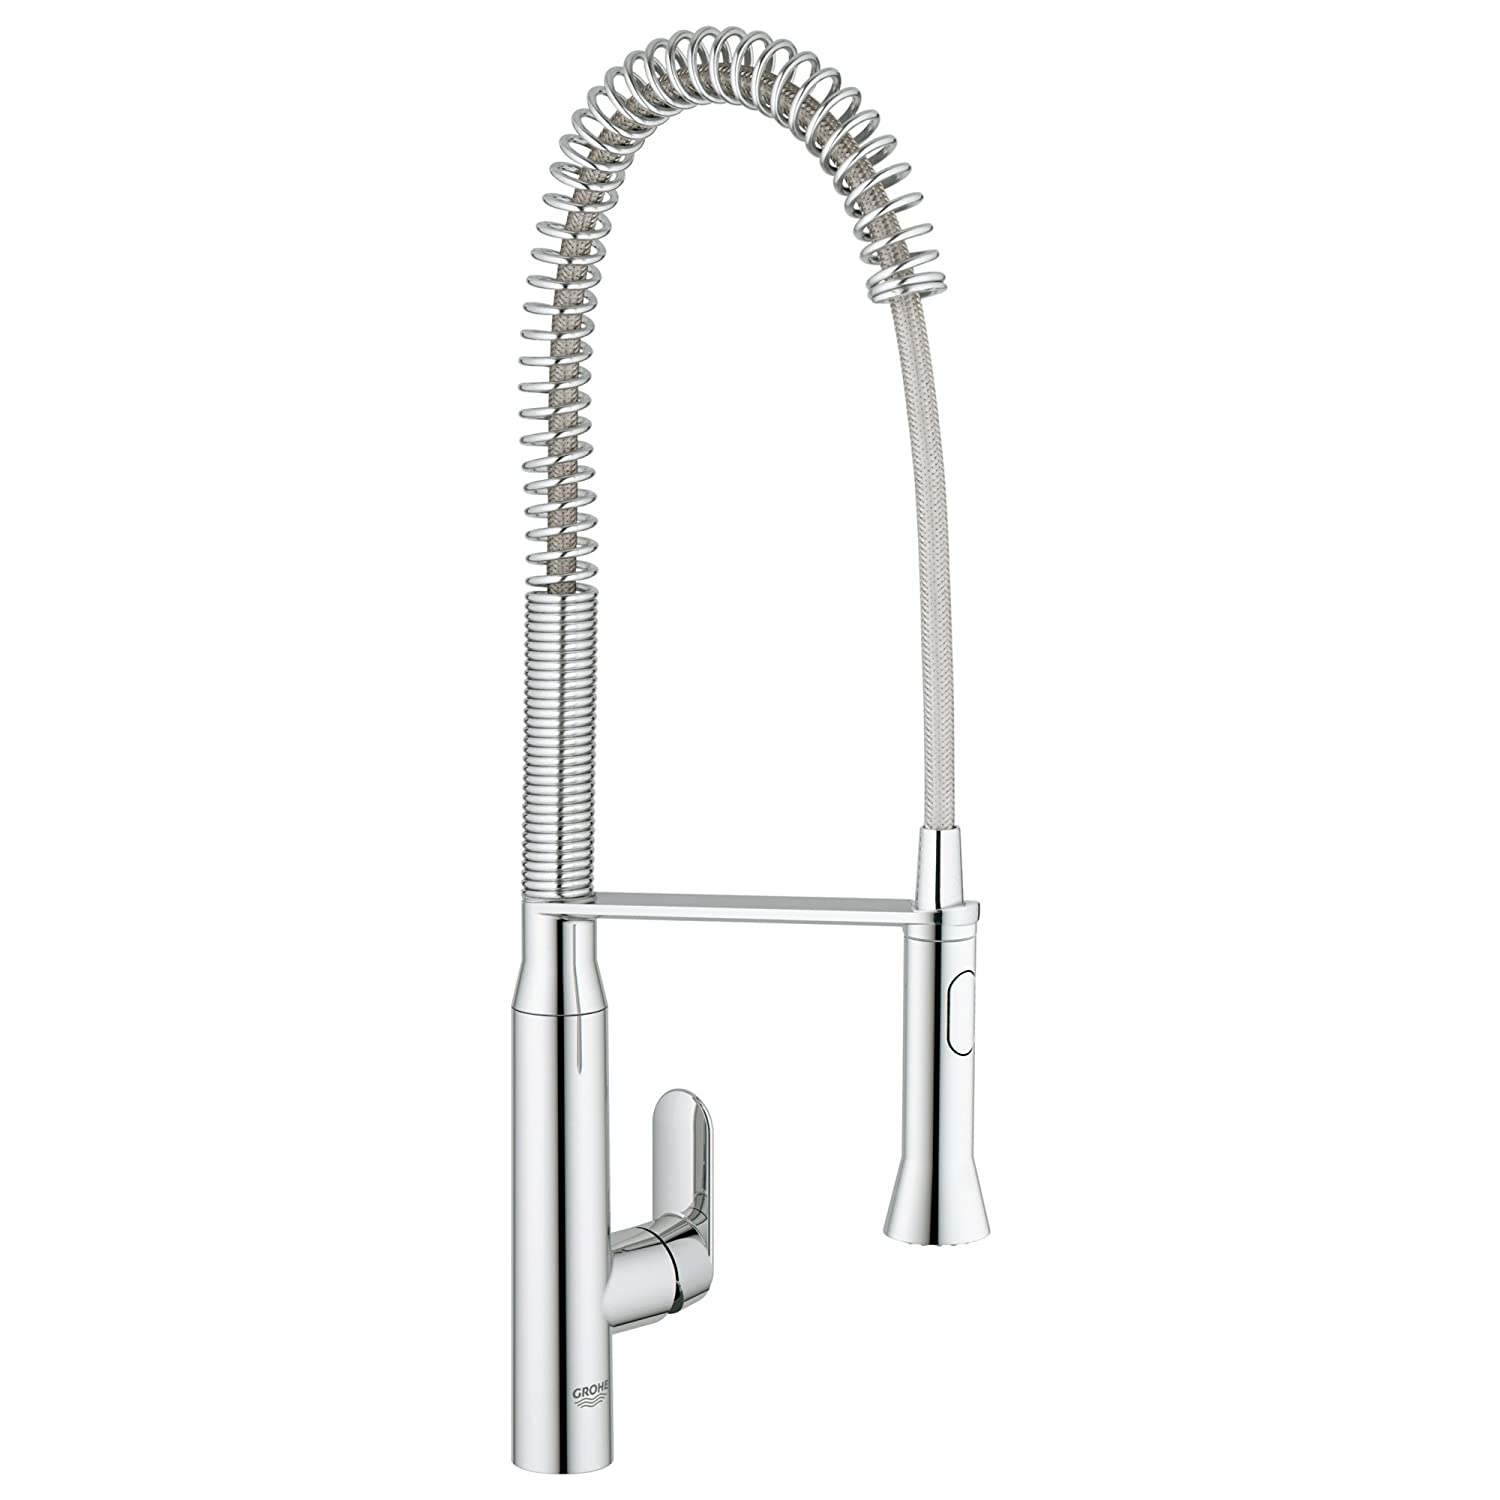 guide coiled faucet best professional faucets buying kitchen reviews commercial